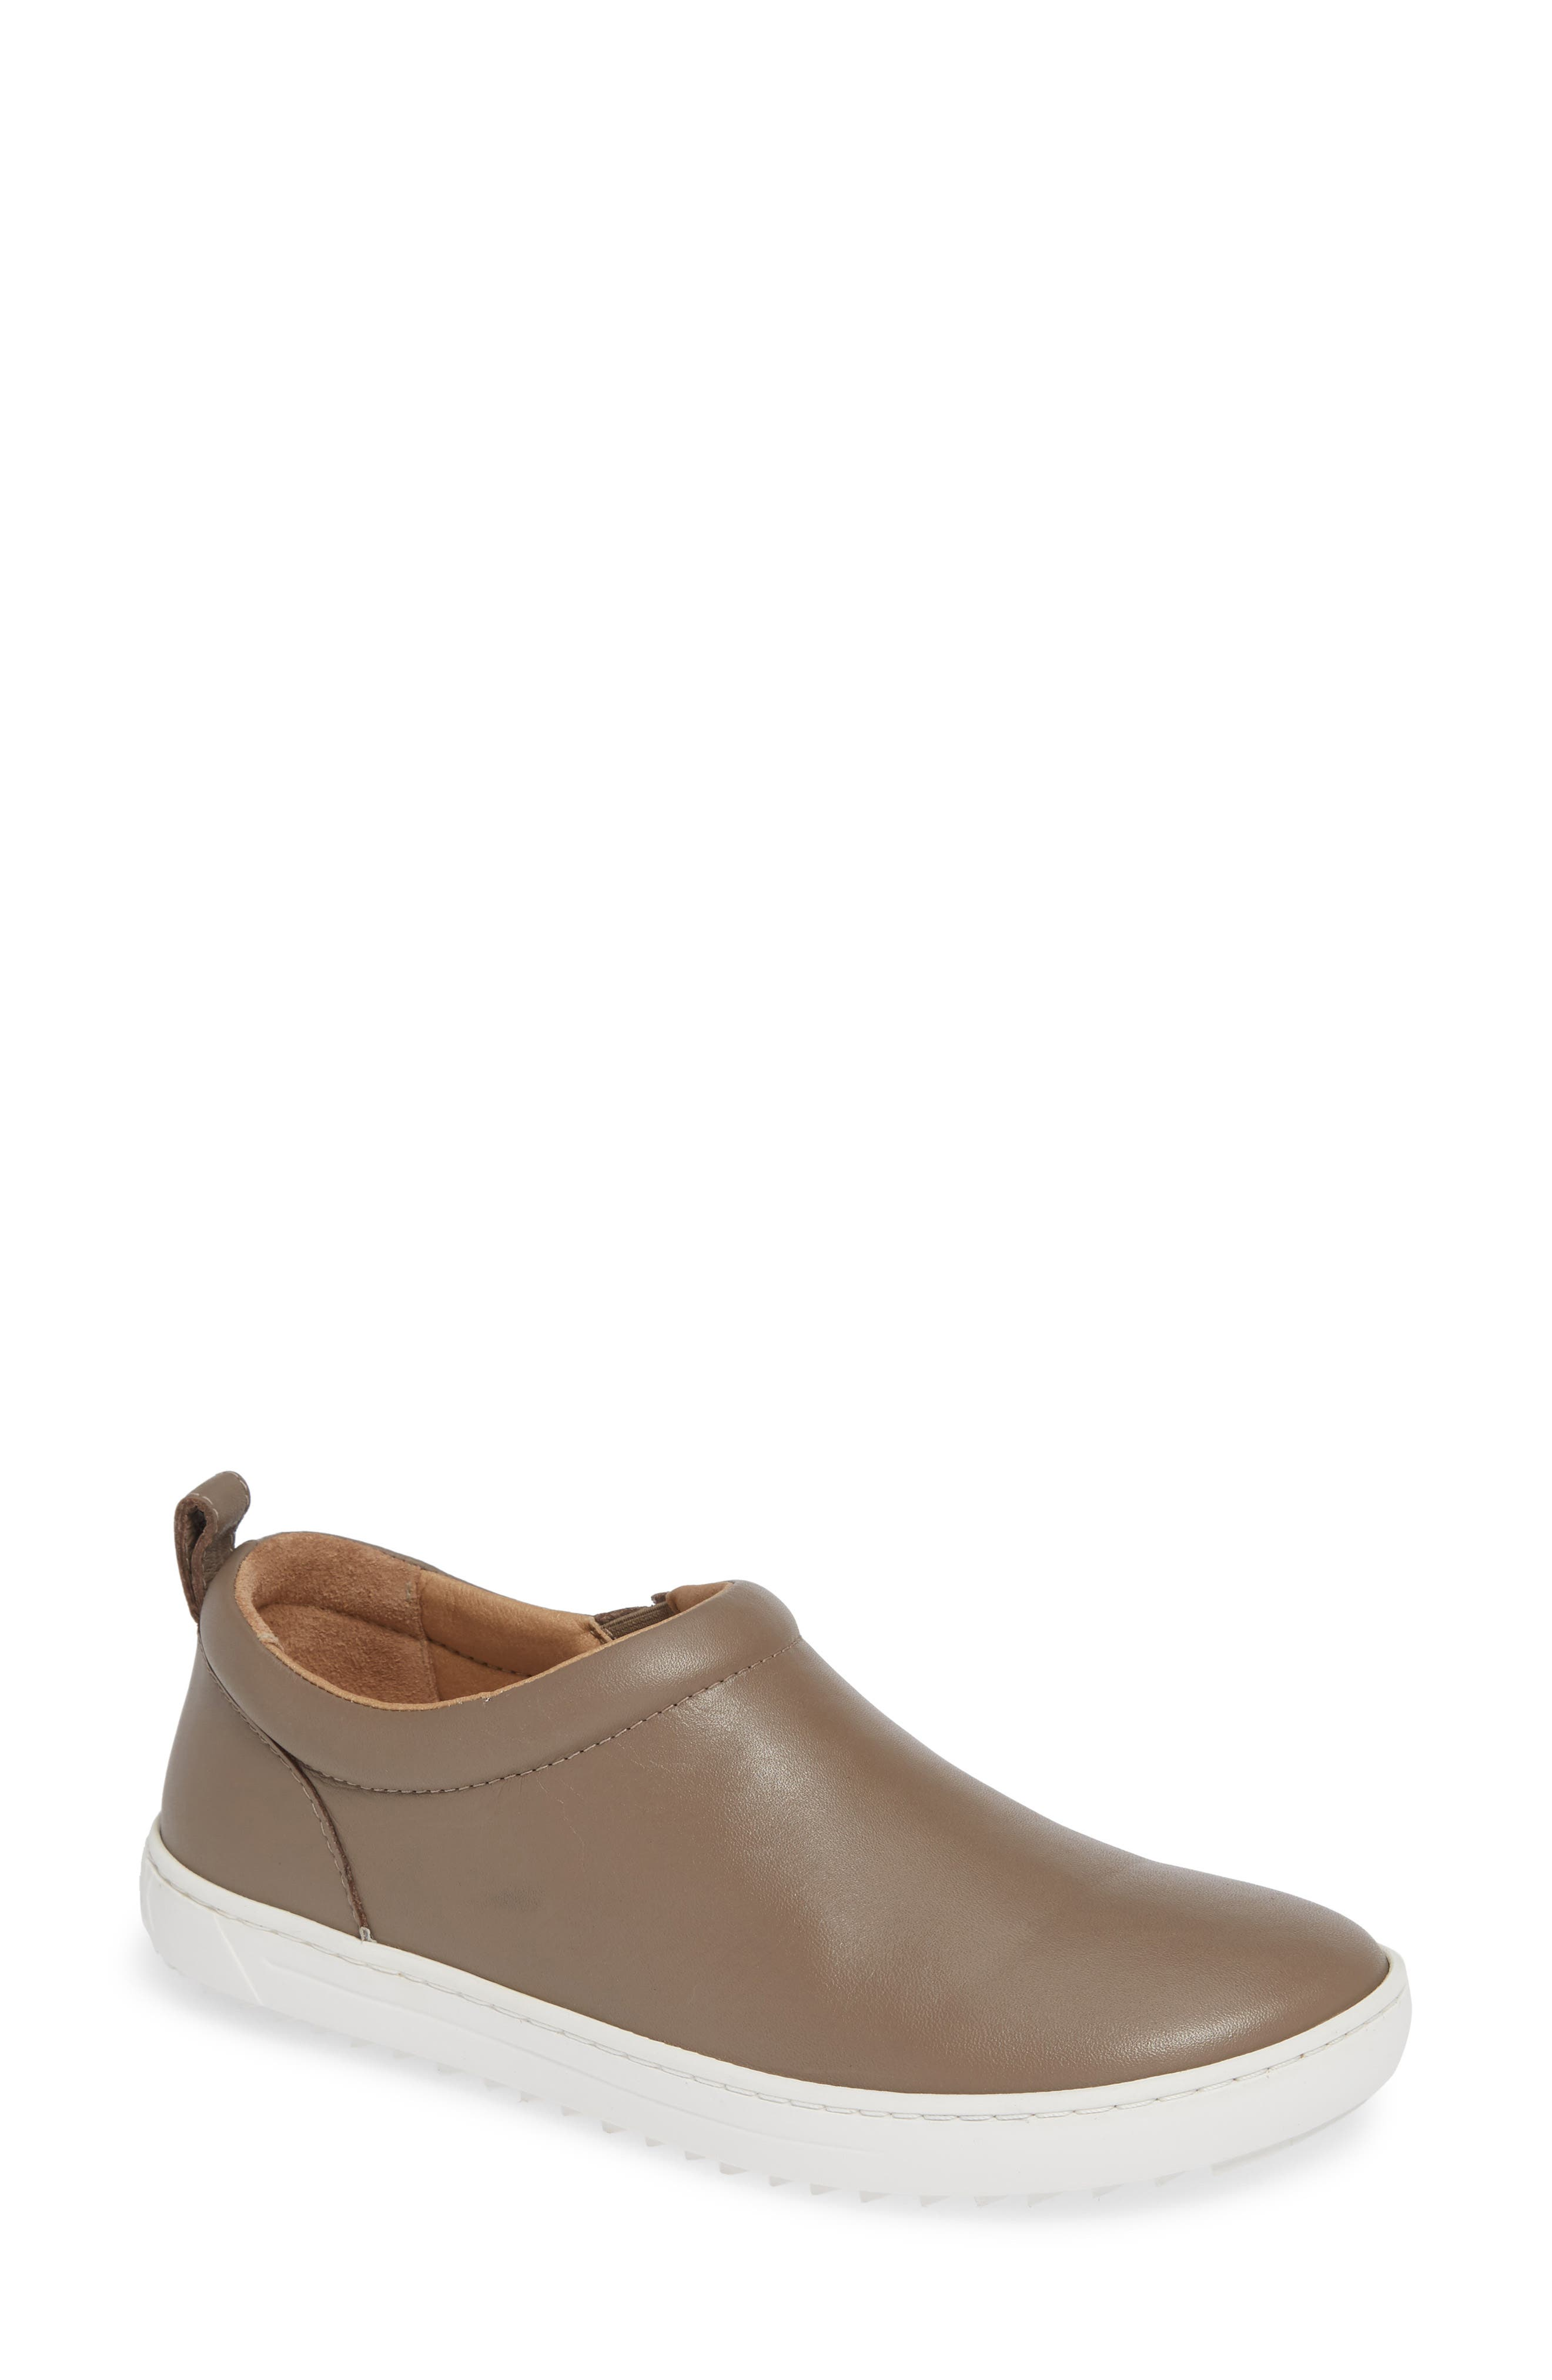 Rena Slip-On Sneaker,                             Main thumbnail 1, color,                             TAUPE LEATHER